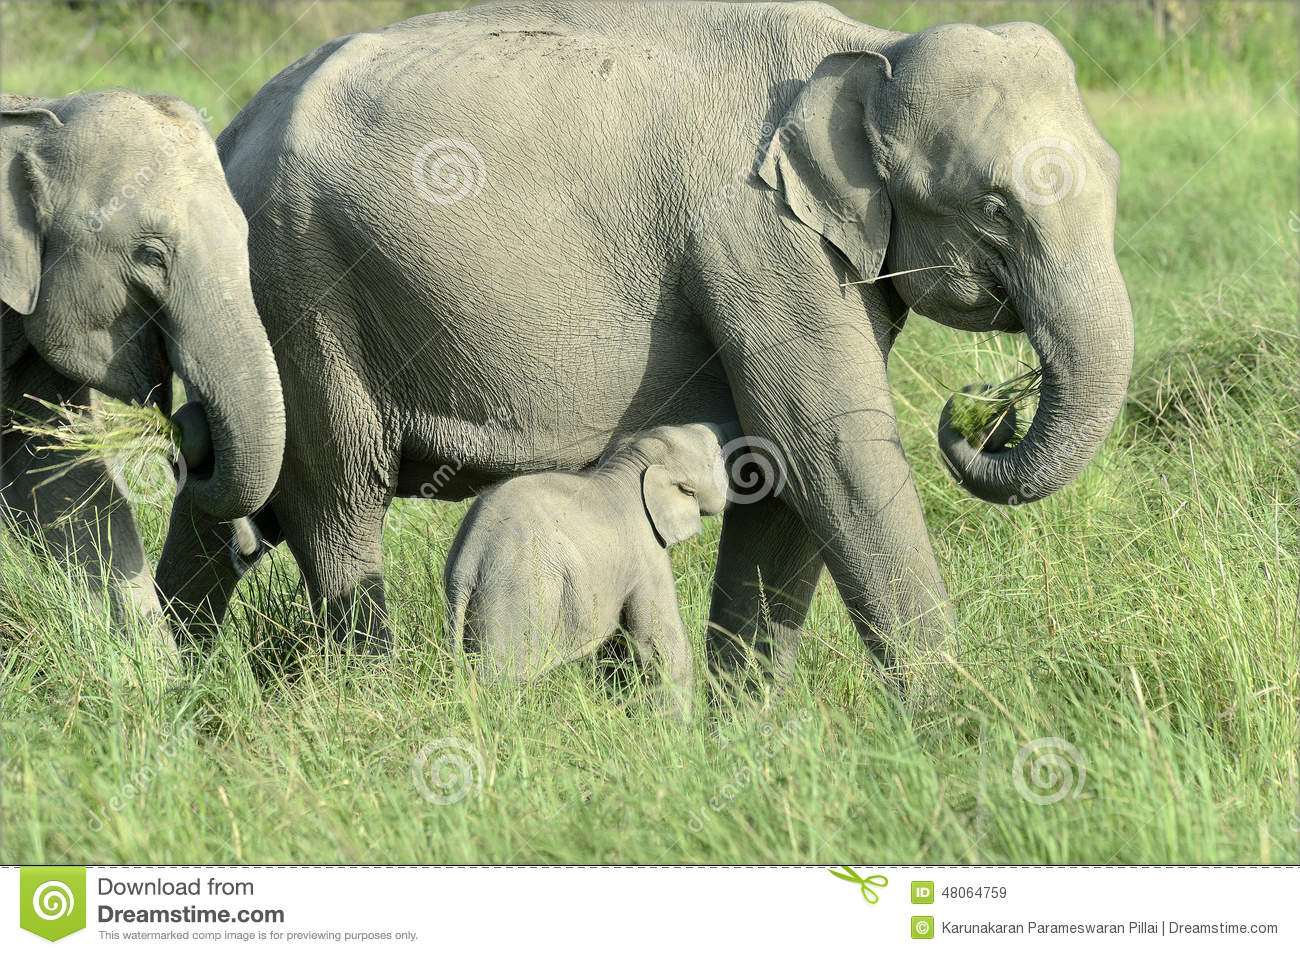 For explanation, Elephant adults only have missed